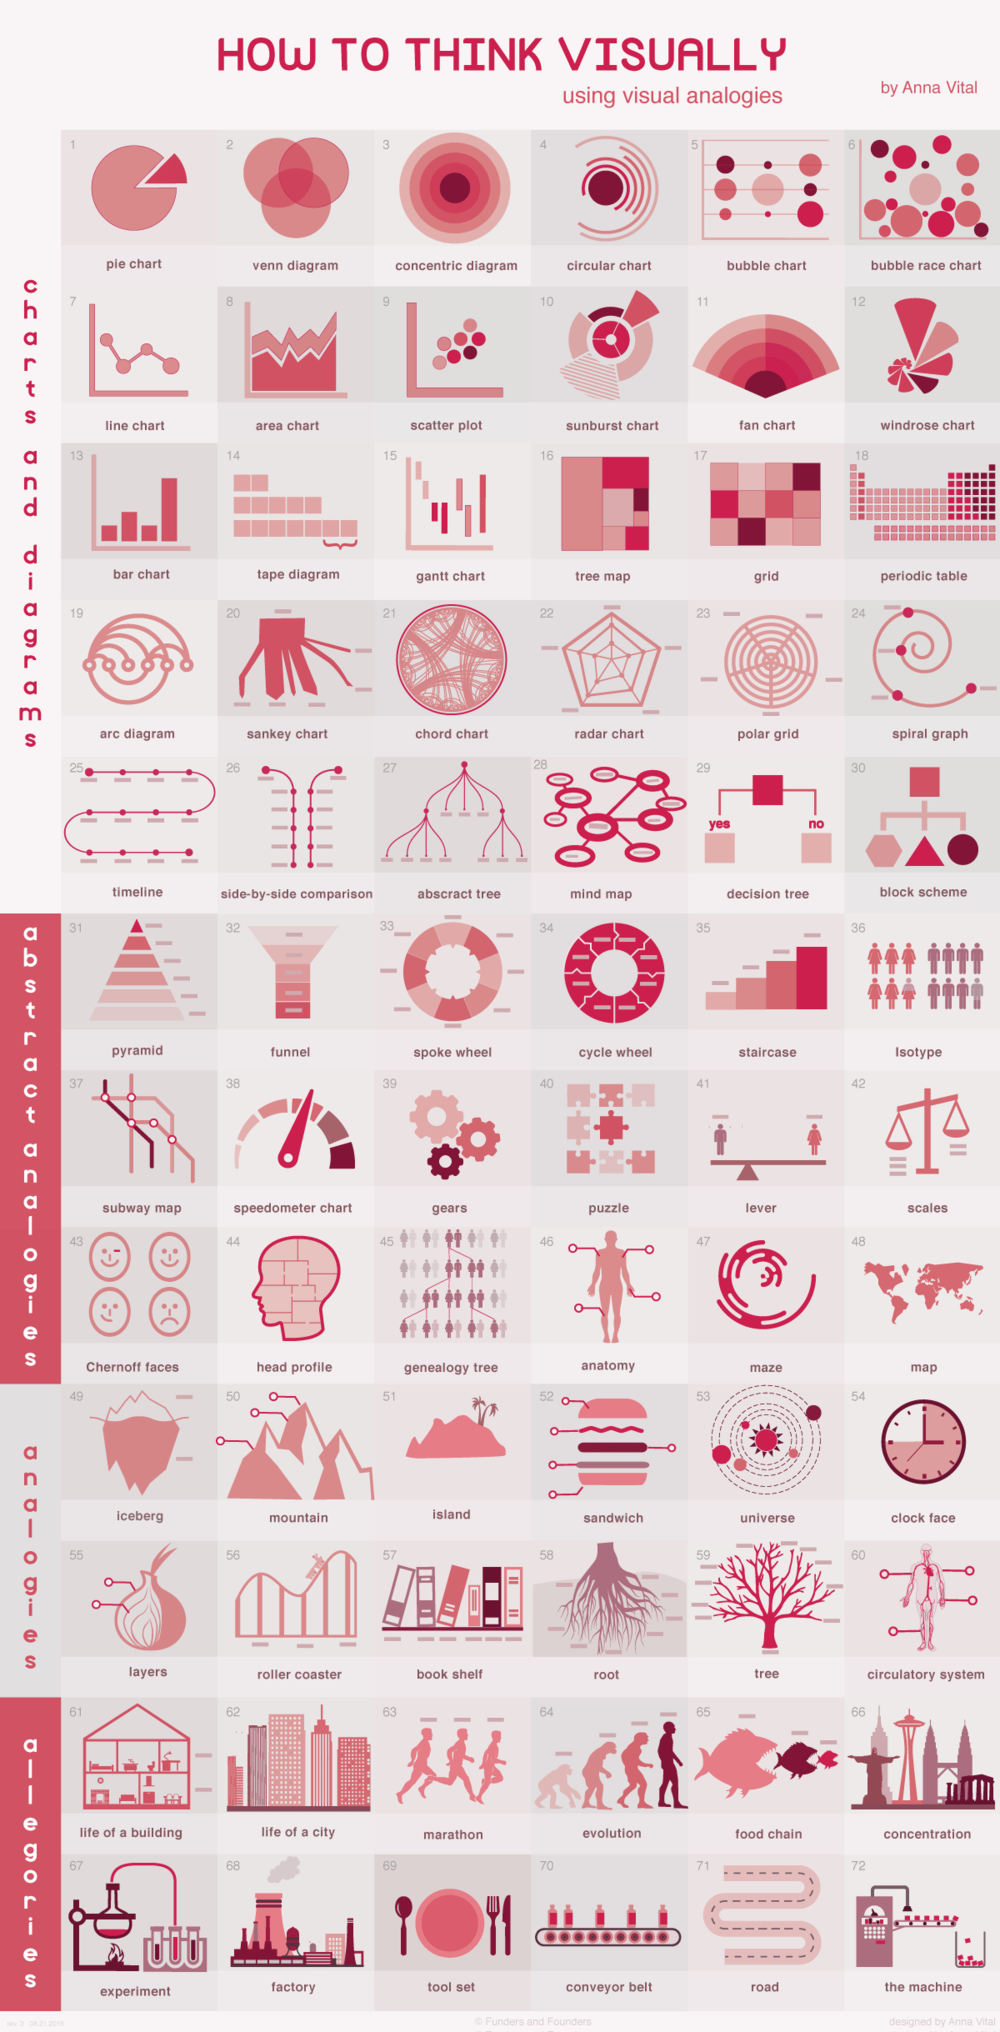 how-to-think-visually-using-visual-analogies-infographic.png